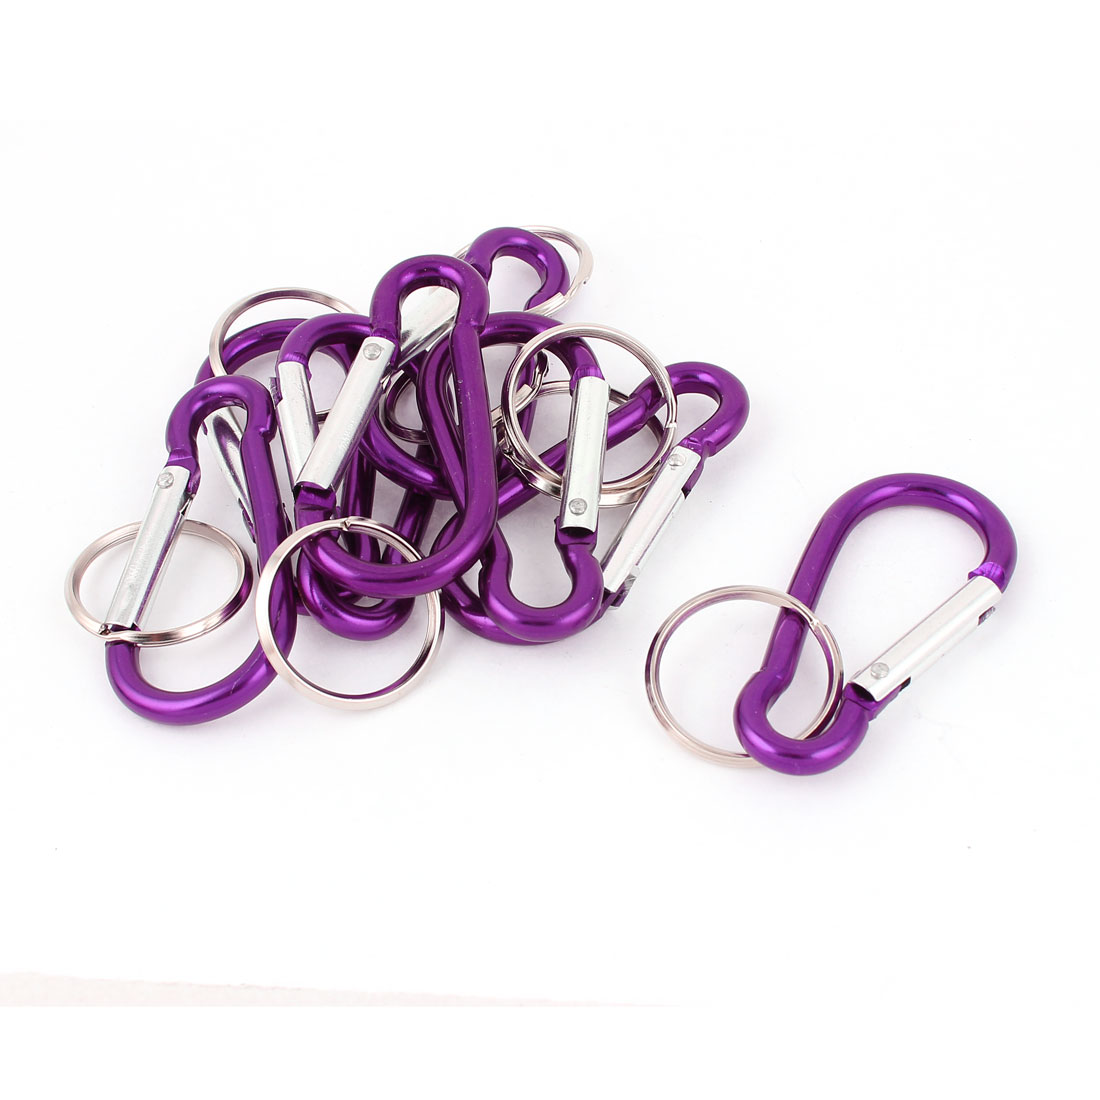 8pcs Purple Metal Carabiner Clips Spring Belt Snap Key Chain Ring Keychain Camping Hook